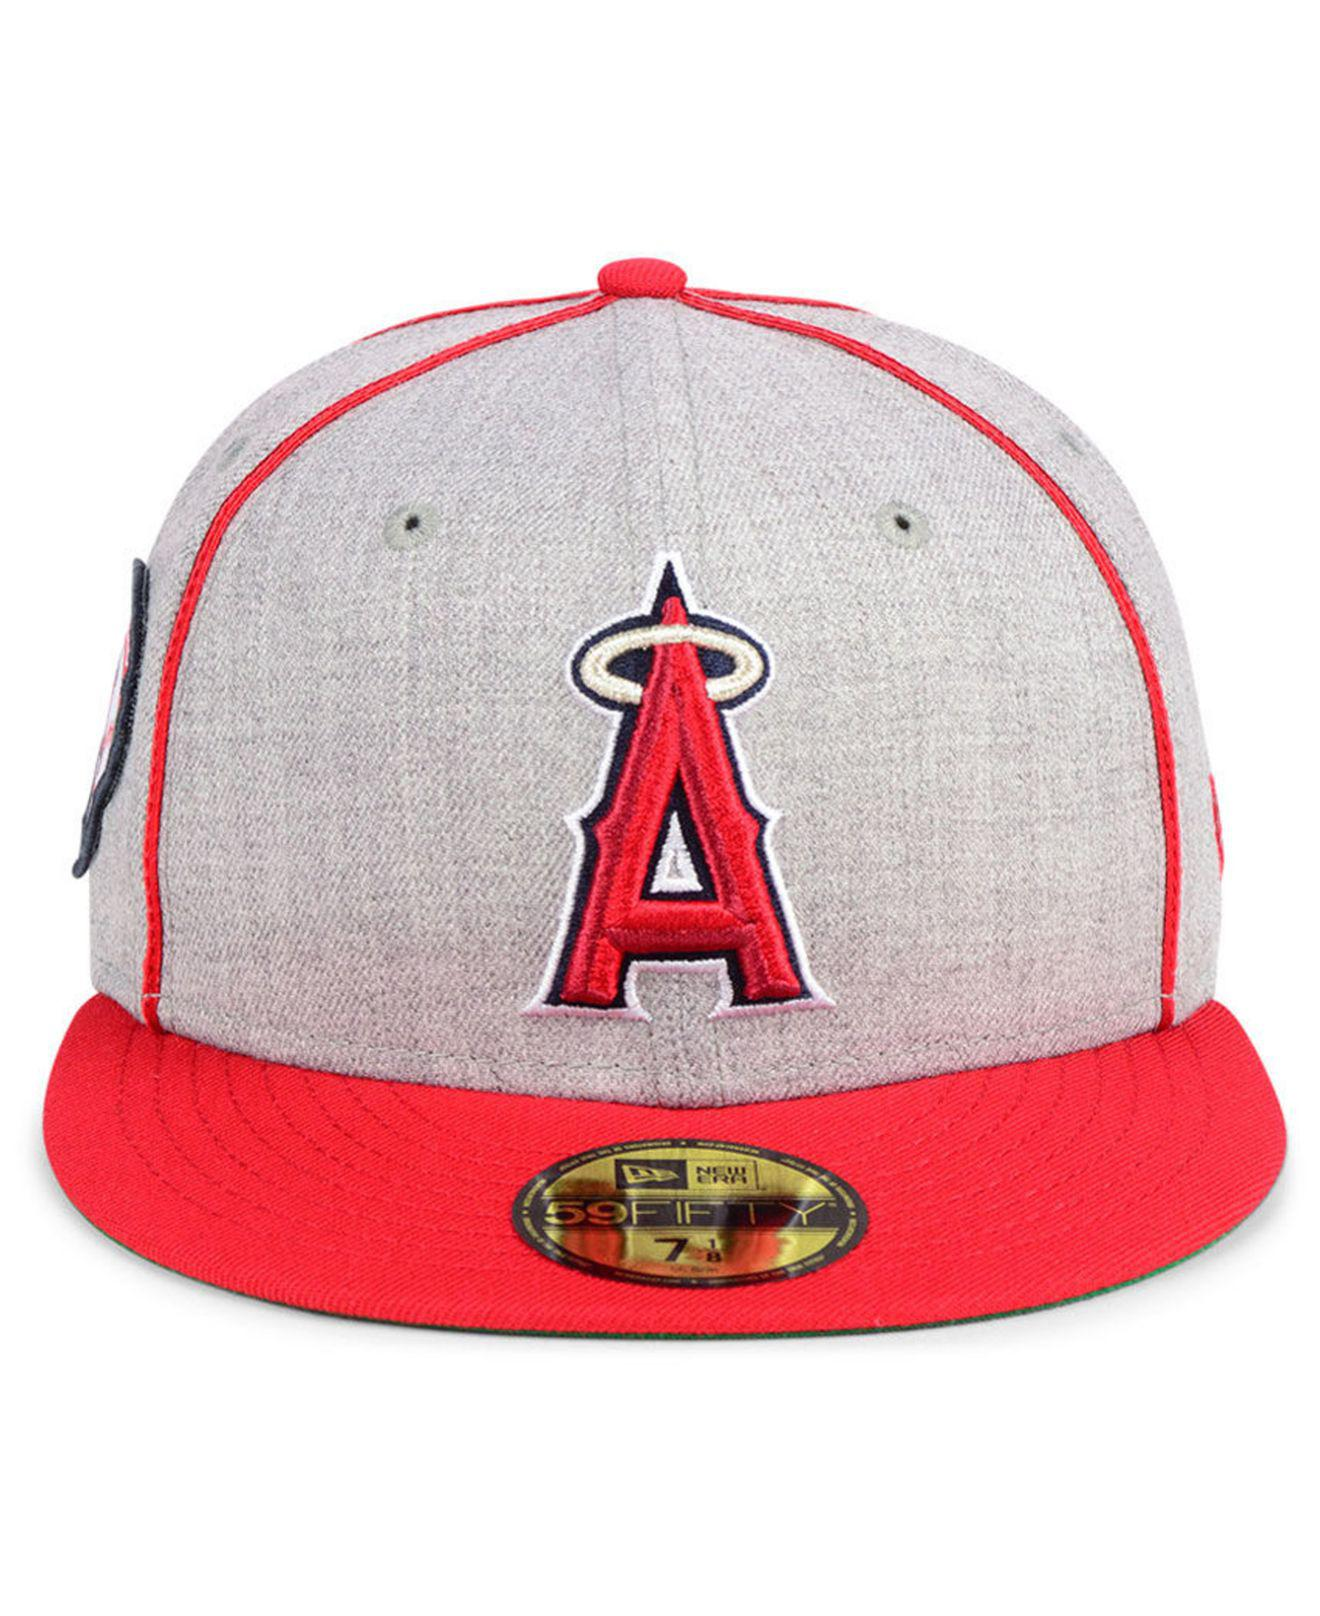 eb395ba1 ... canada lyst ktz los angeles angels stache 59fifty fitted cap in red for  men cde8f cbe13